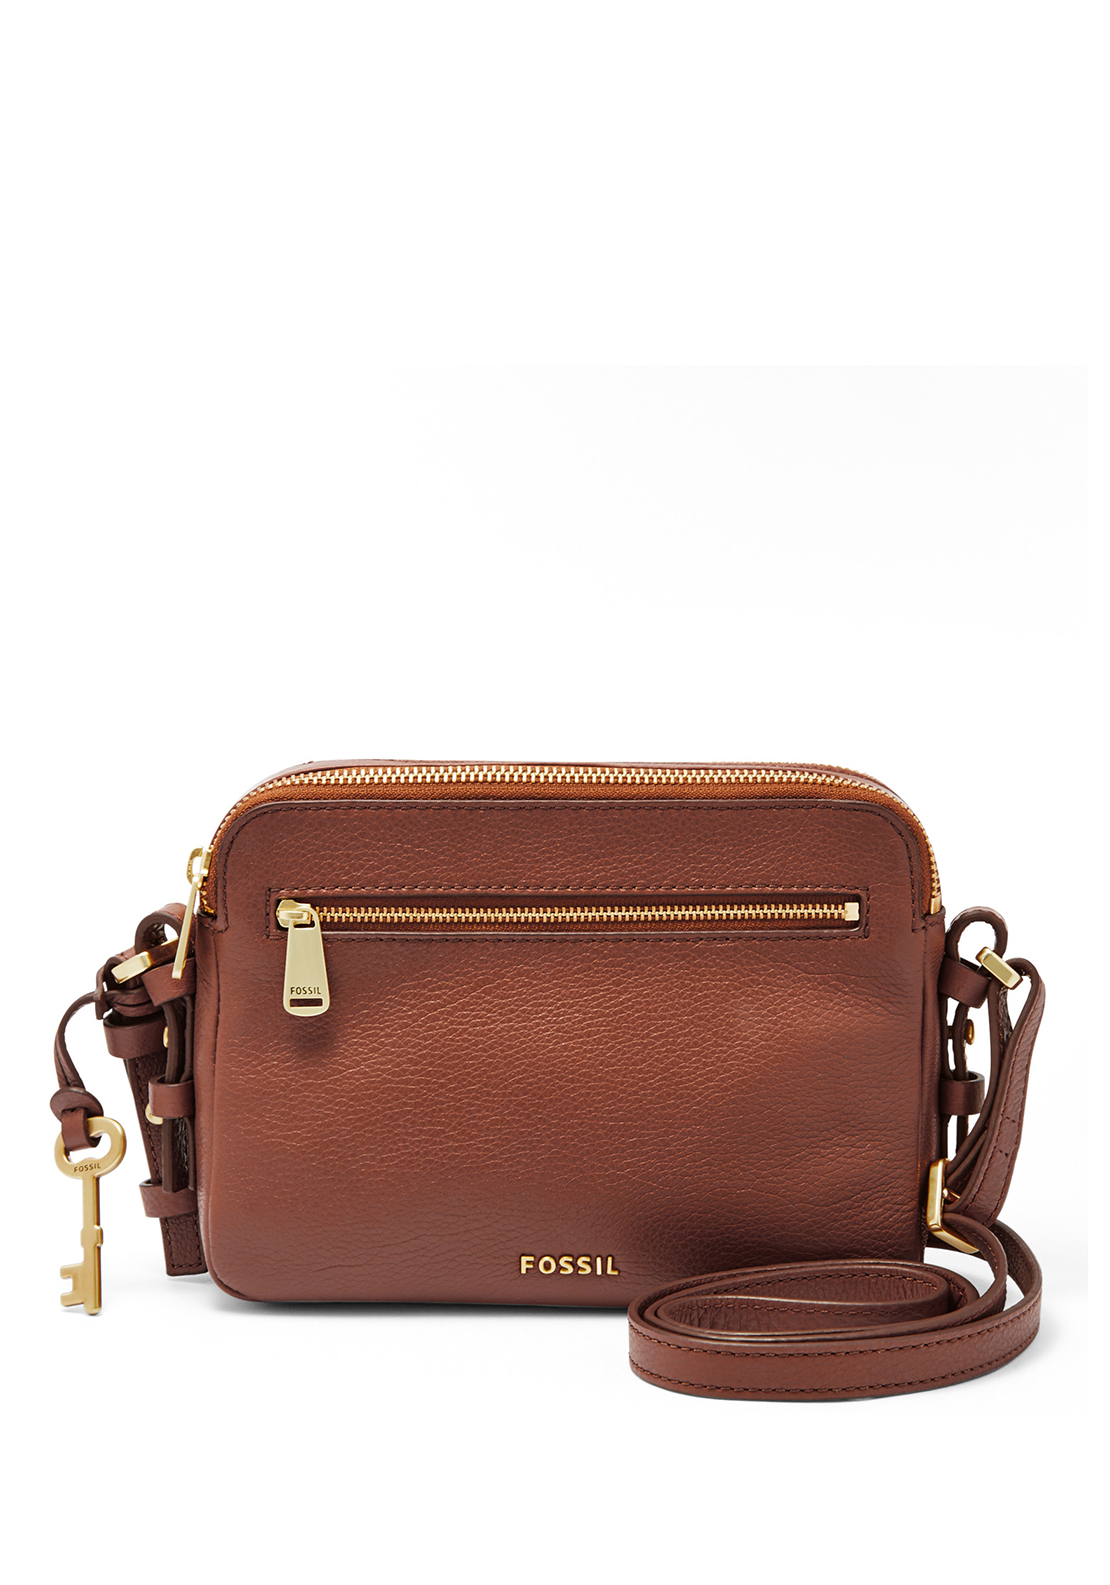 Fossil Piper Pebble Leather Toaster Crossbody Bag, Brown